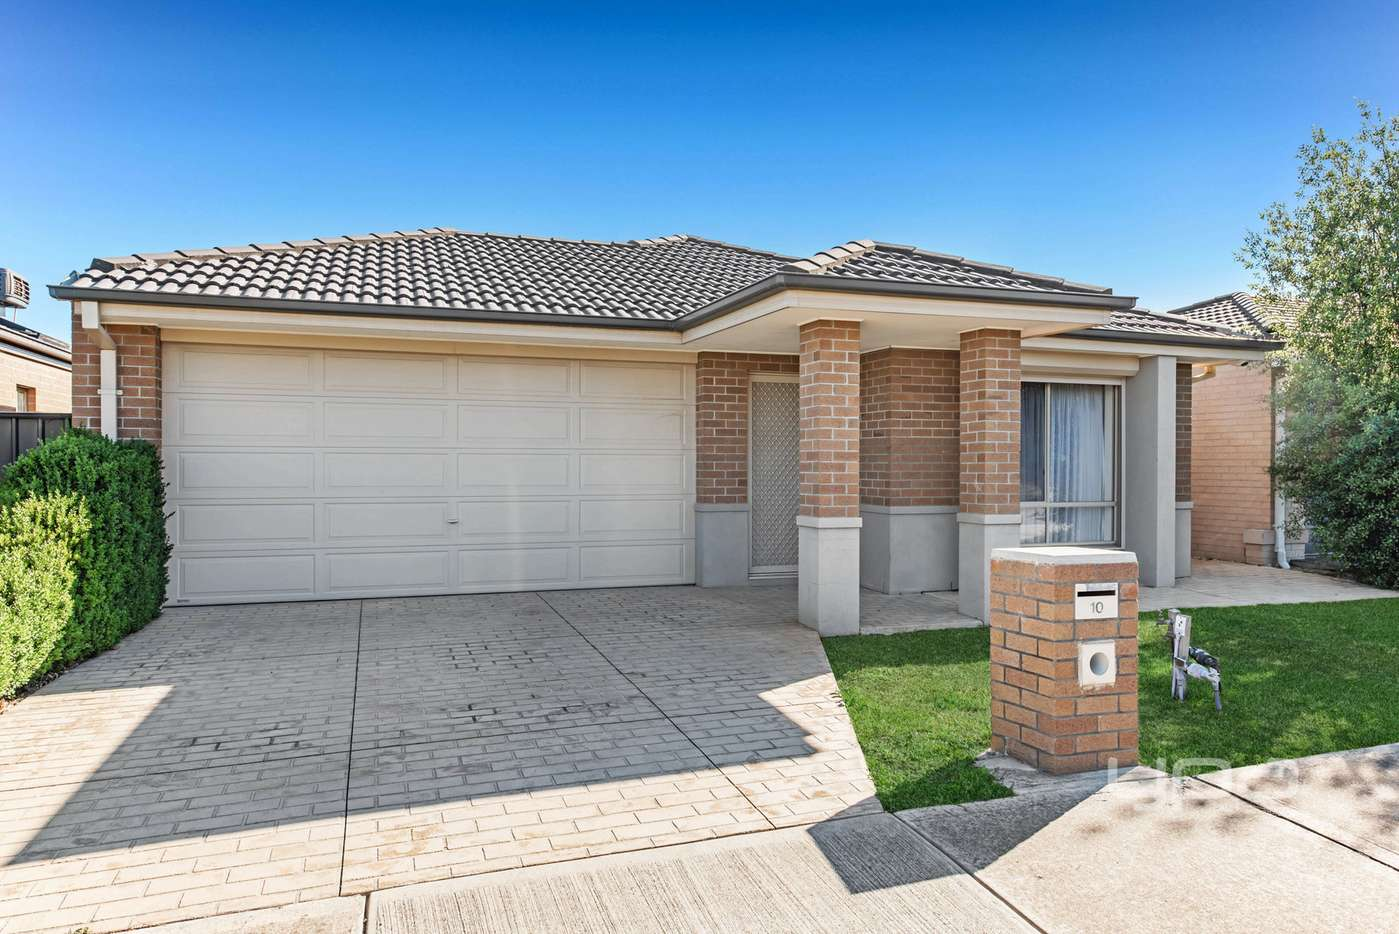 Main view of Homely house listing, 10 Birdswood Crescent, Craigieburn, VIC 3064